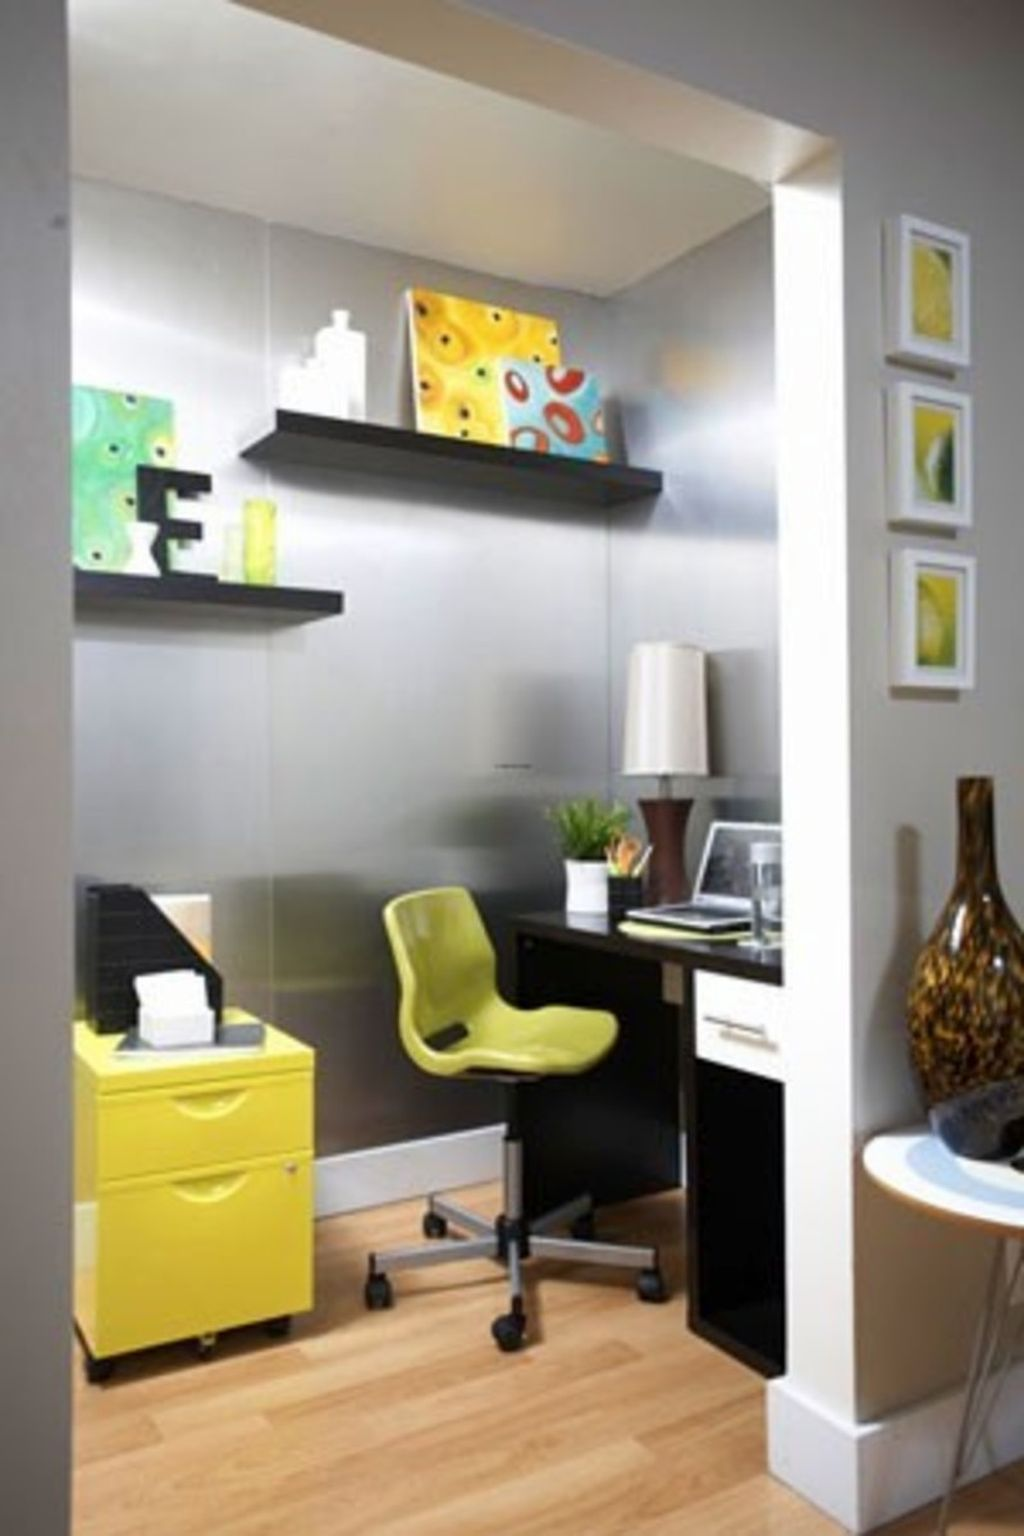 20 inspiring home office design ideas for small spaces - Small spaces furniture ideas pict ...